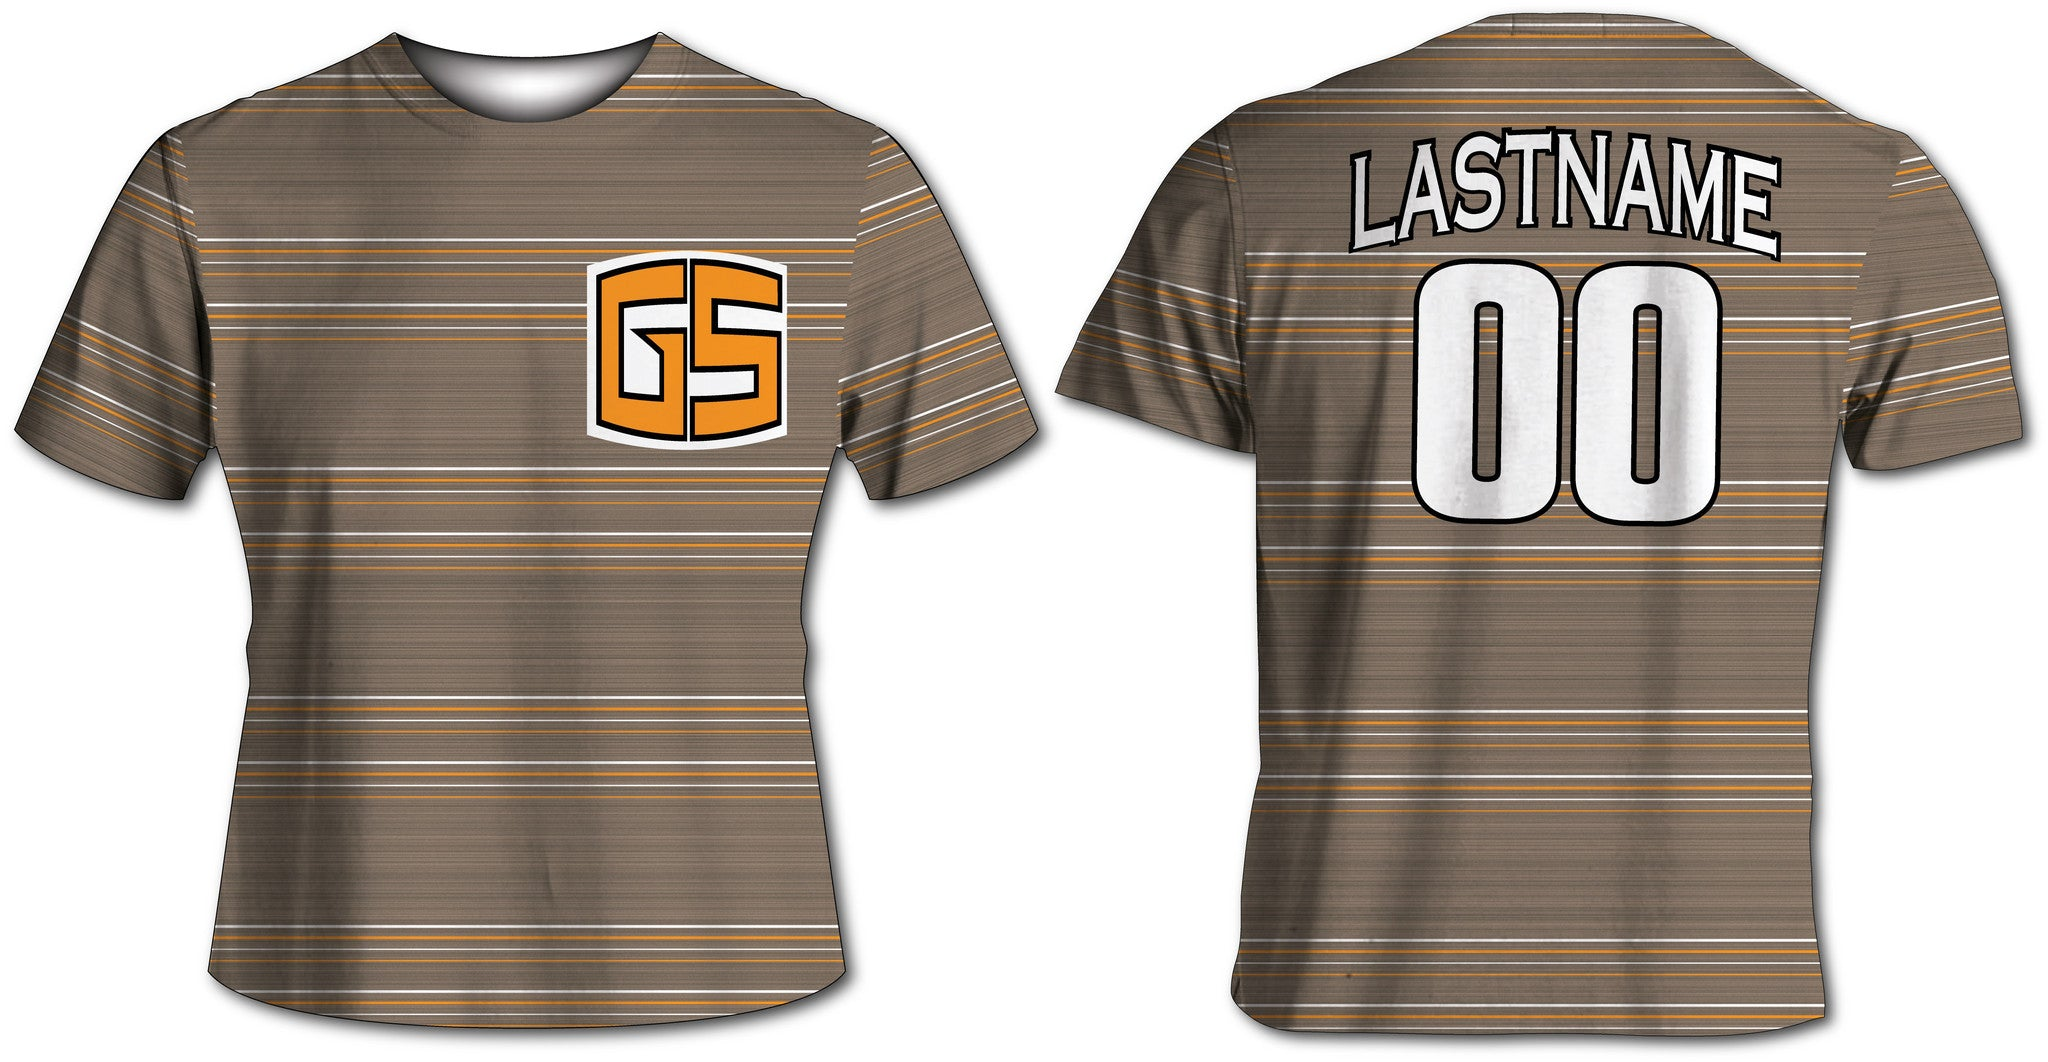 Softball Baseball Design #15